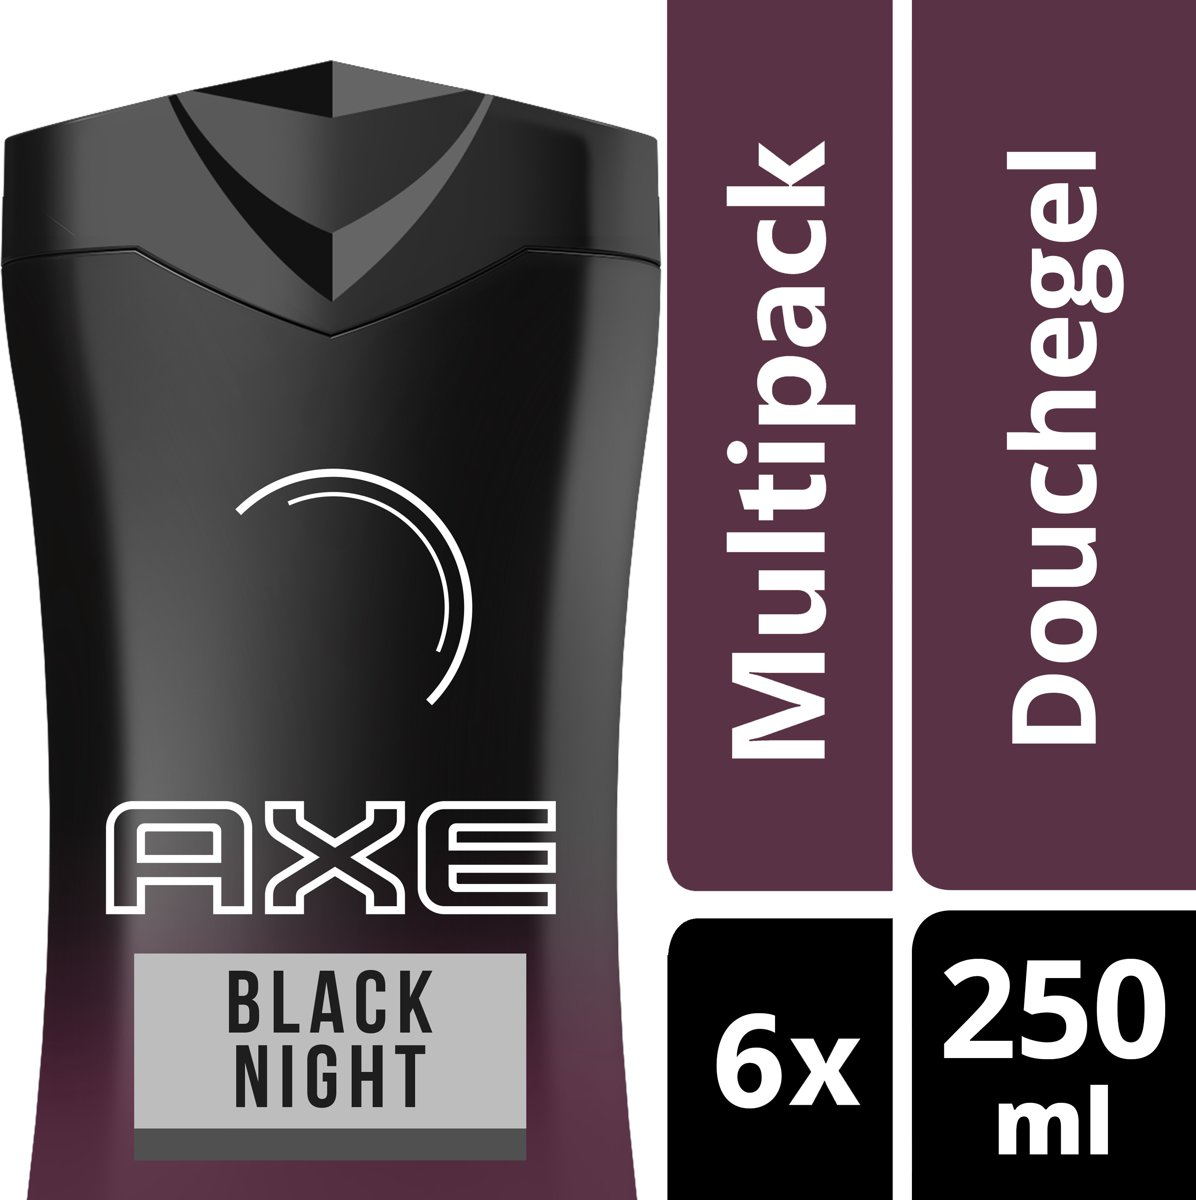 Axe Black Night For Men Douchegel  - 6 x 250 ml - Voordeelverpakking